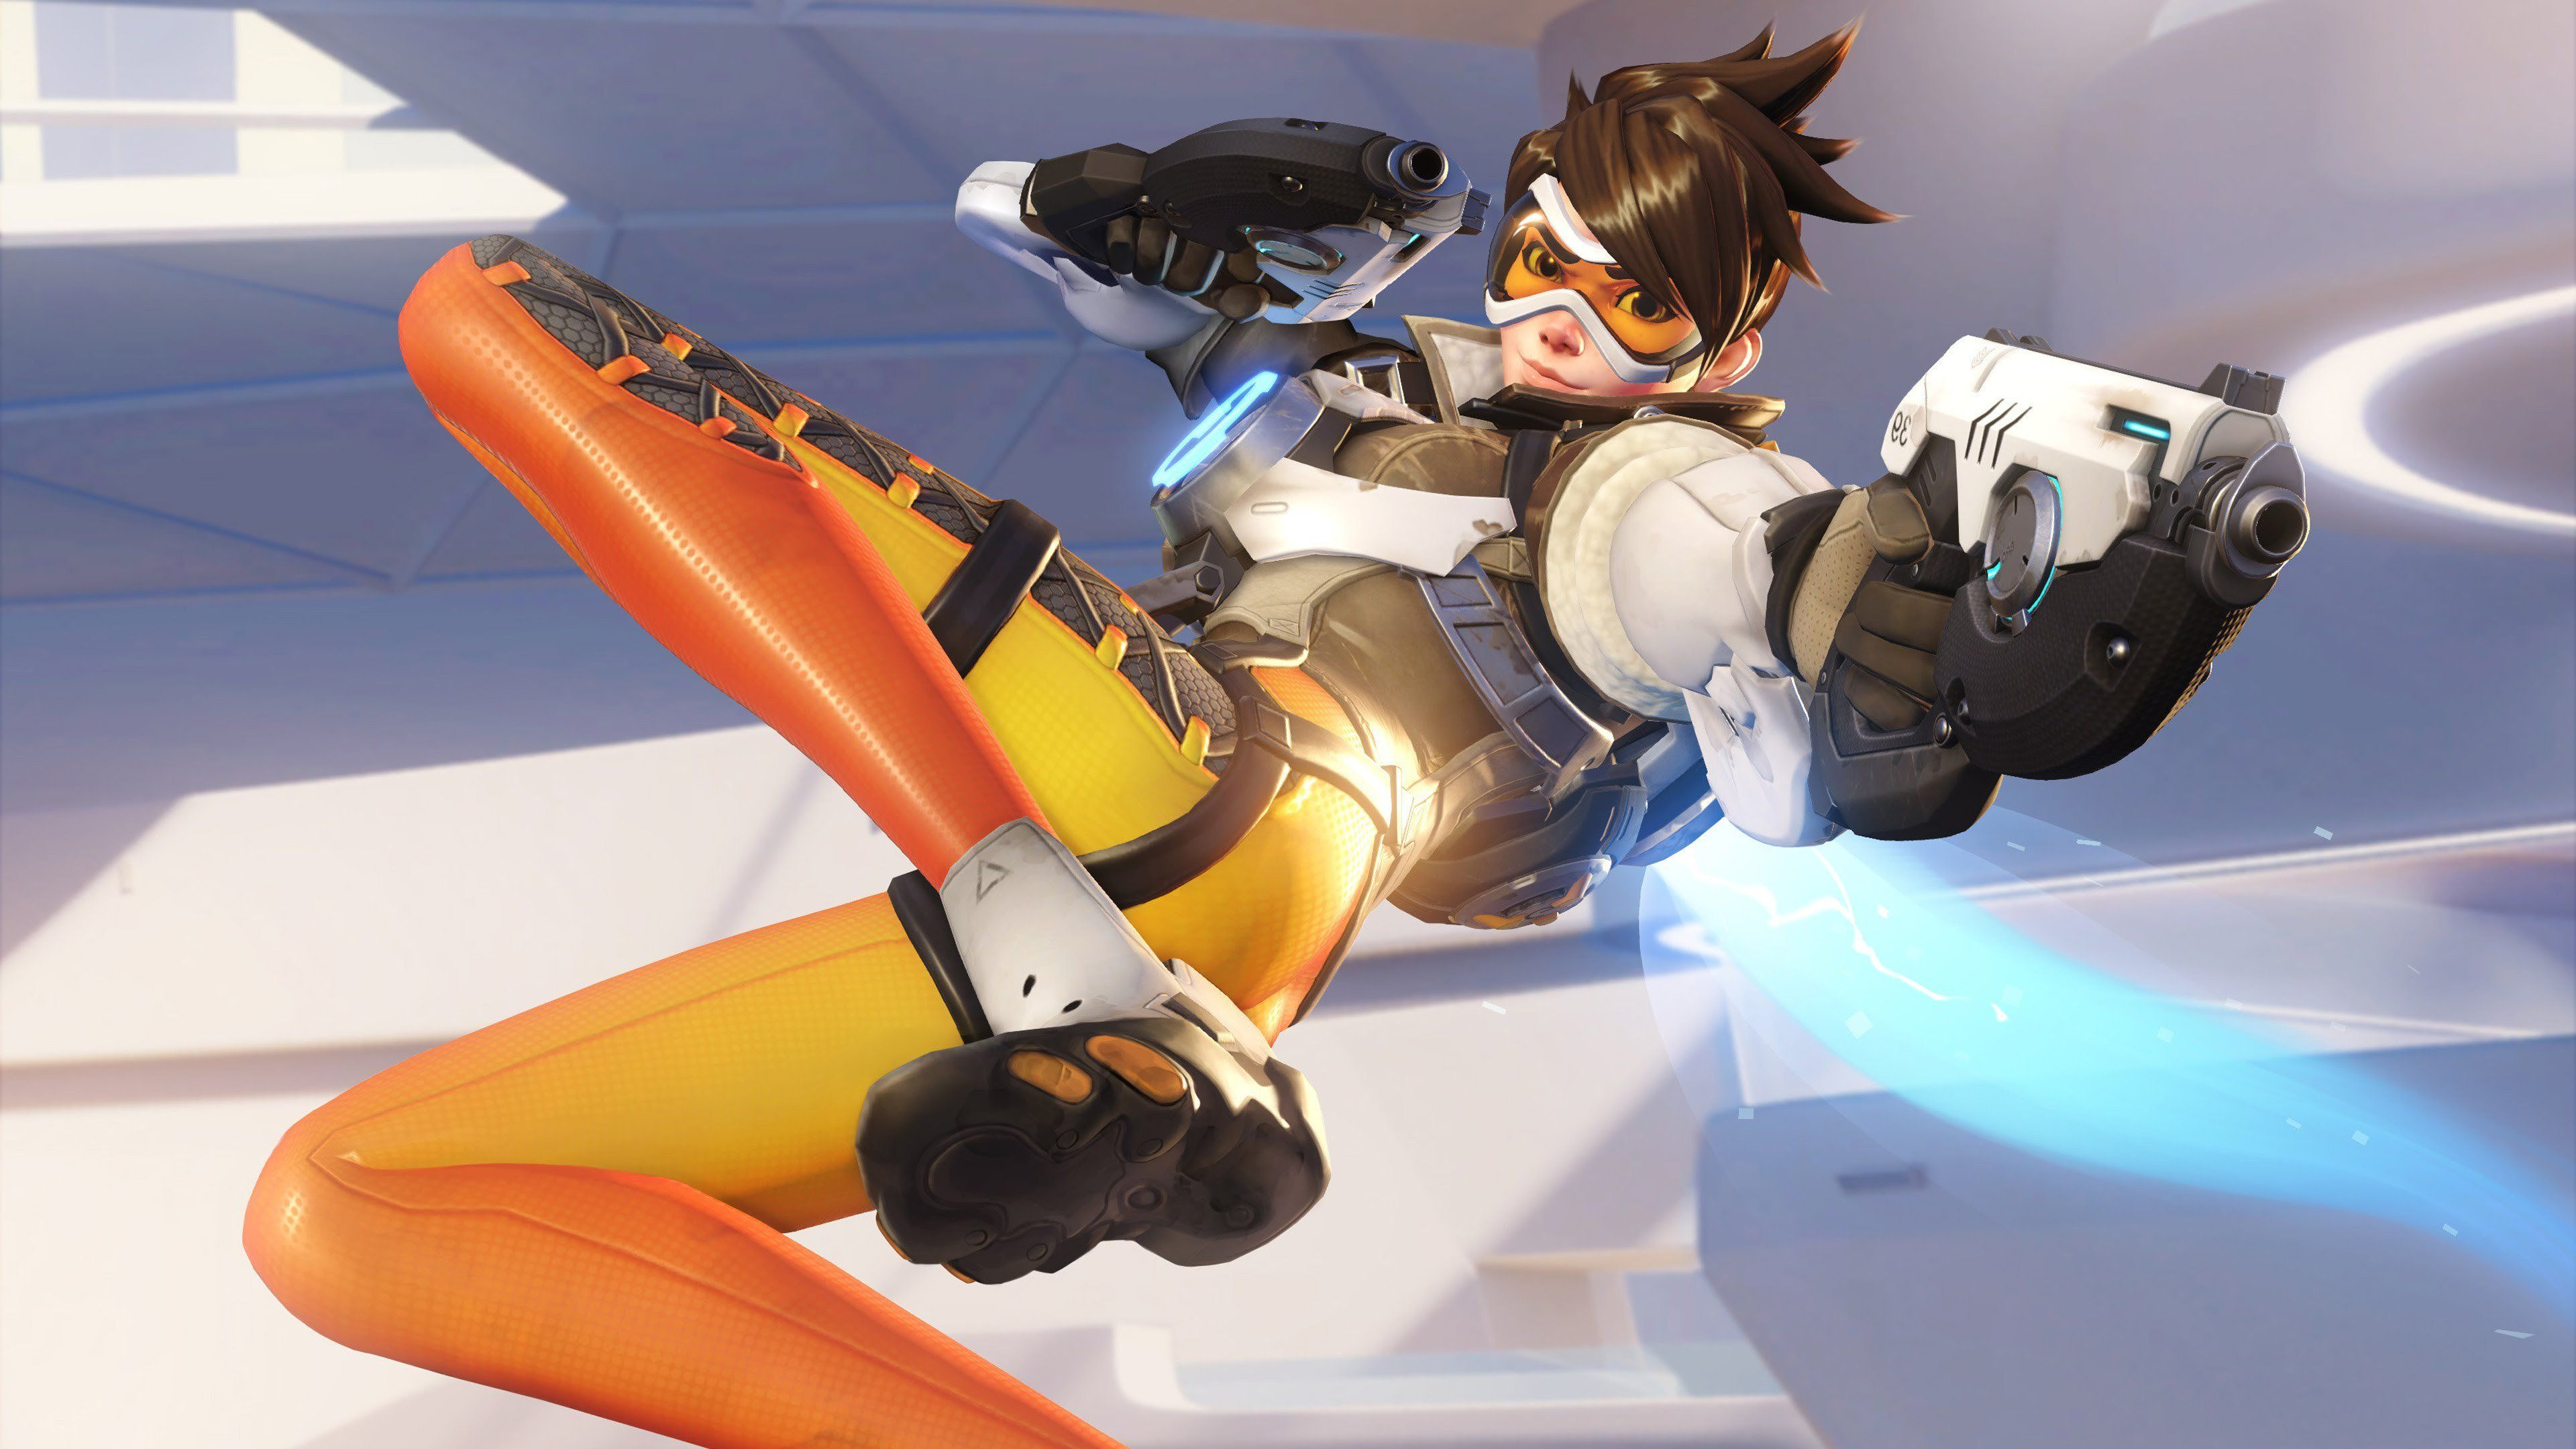 Overwatch Tracer Wallpapers Free Sdeerwallpaper Overwatch Tracer Overwatch Wallpapers Overwatch